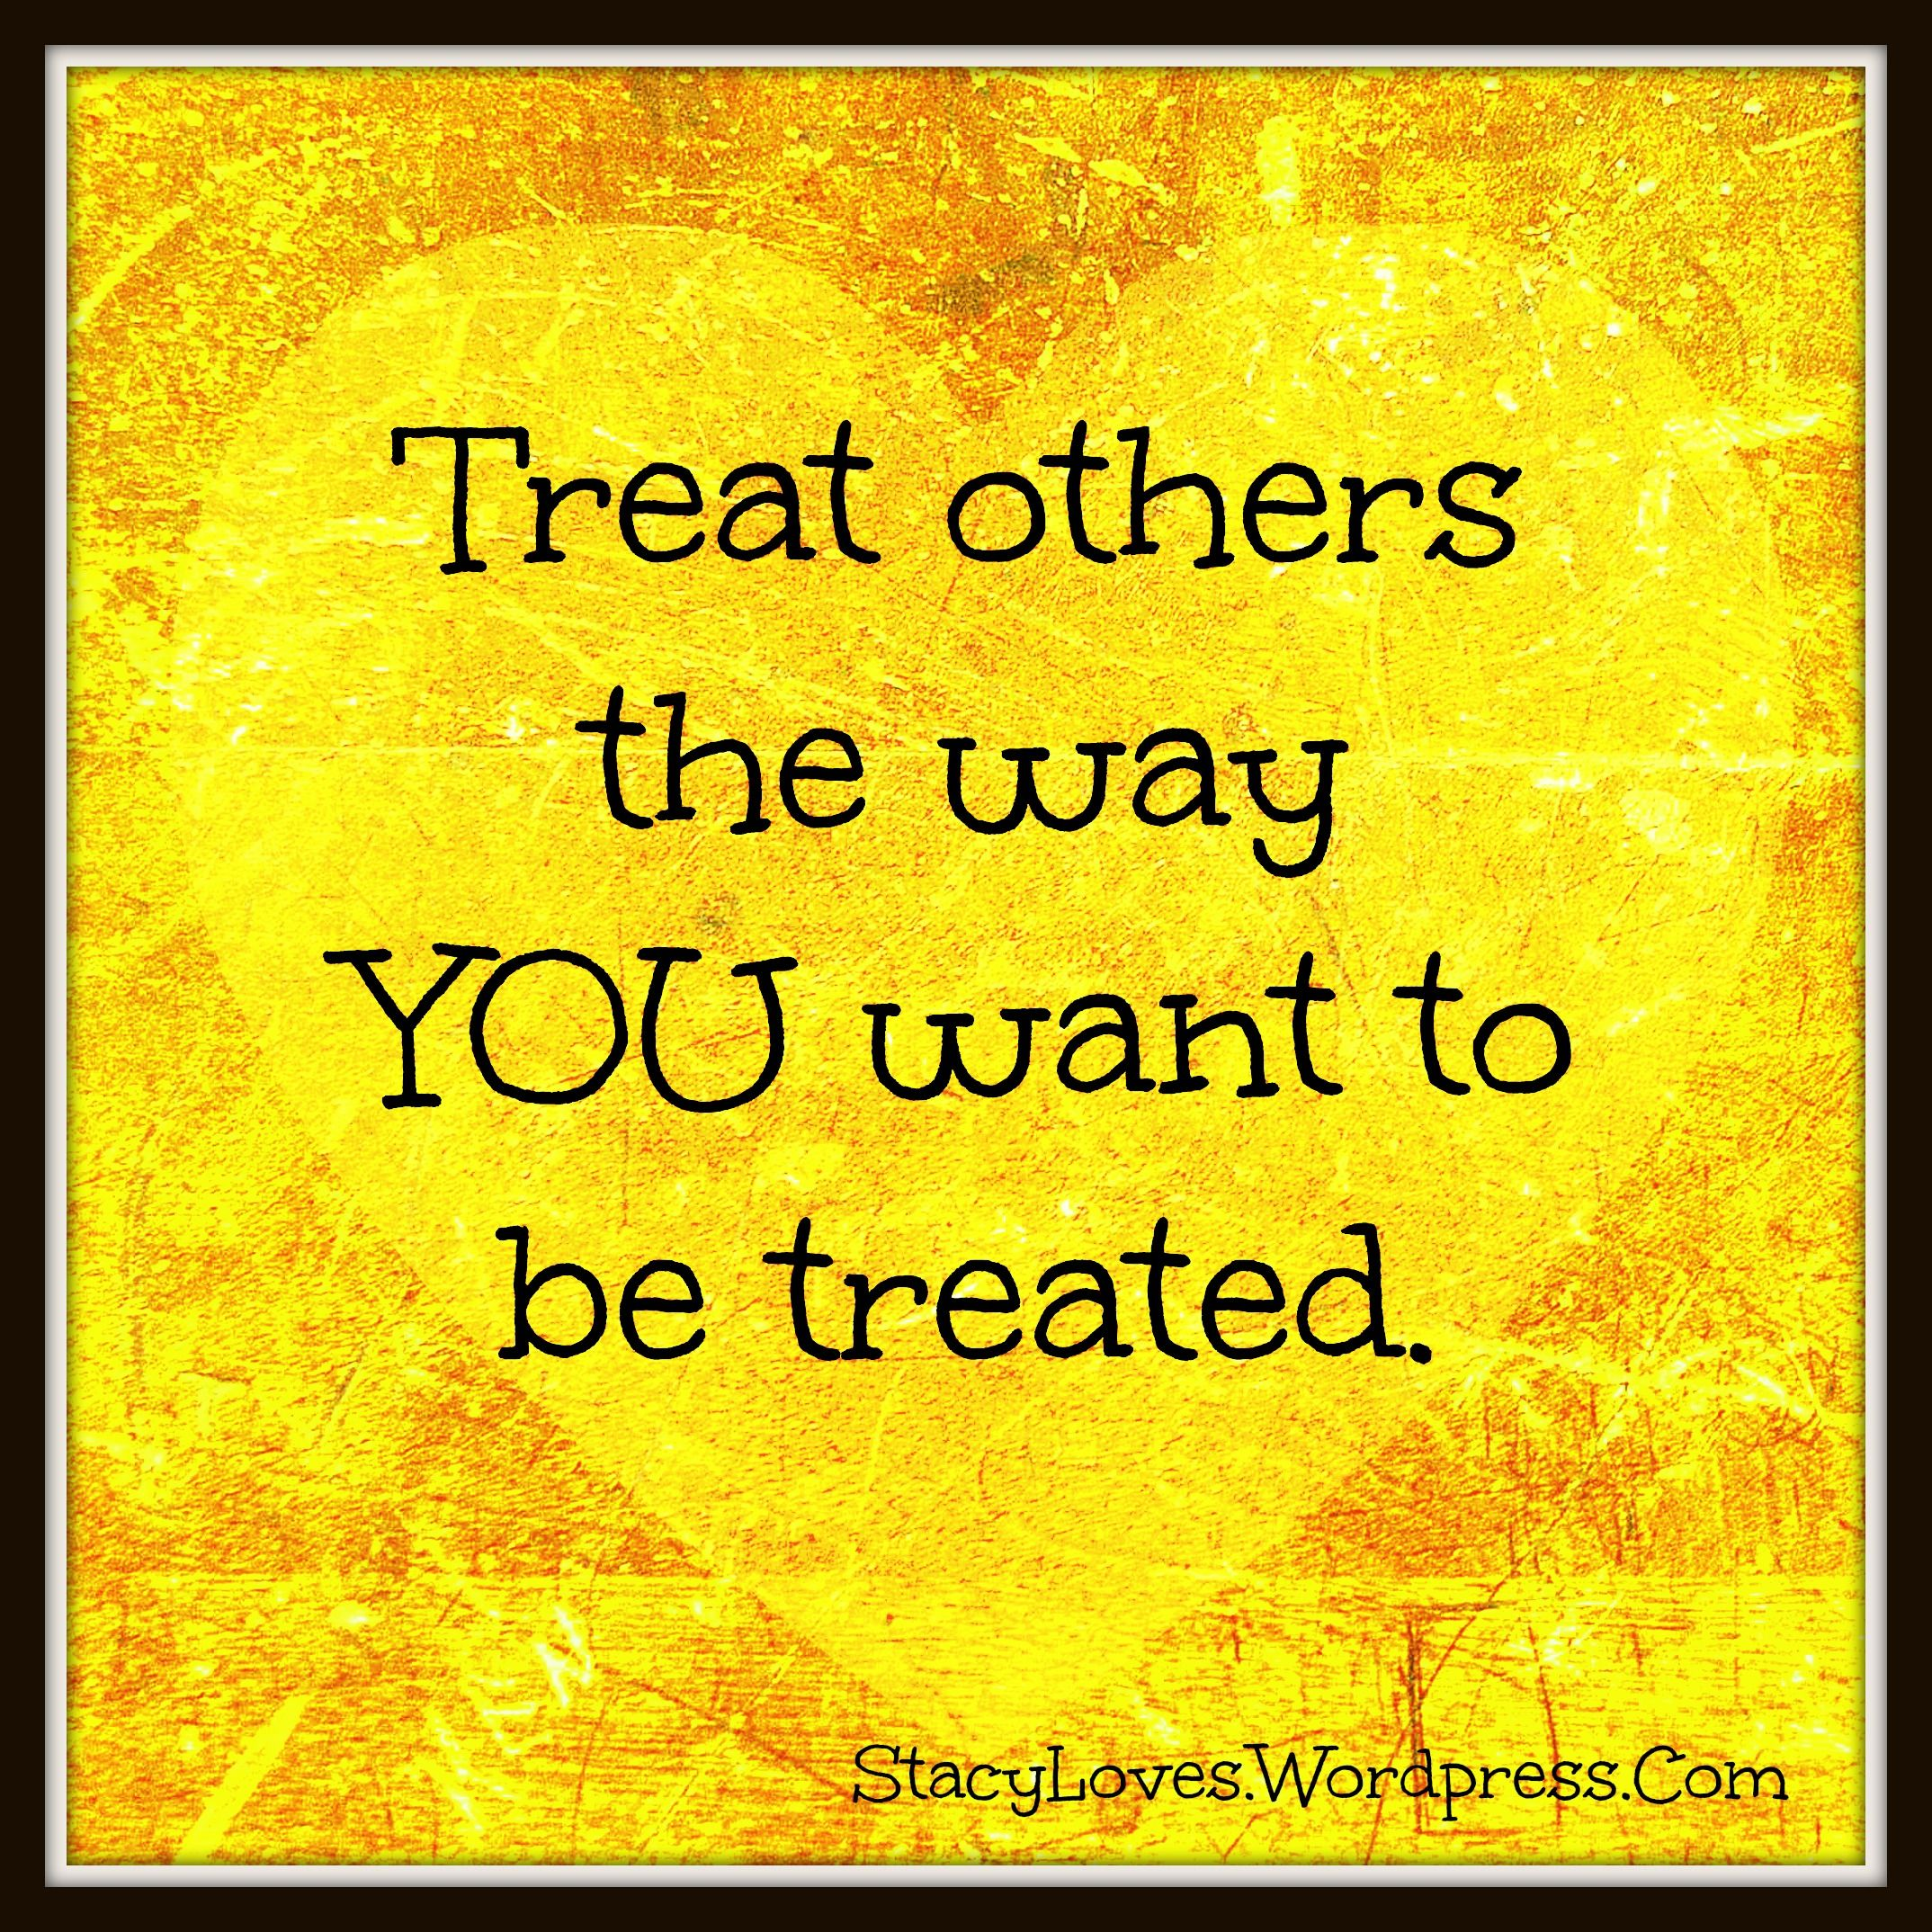 treat others the way you want to be treated essay These days when i hear the admonition about treating others the way you want to be treated i realize it really means to treat others the way they want to be treated i have gone to great lengths to treat others in the way they want to be treated even though it is foreign to me.